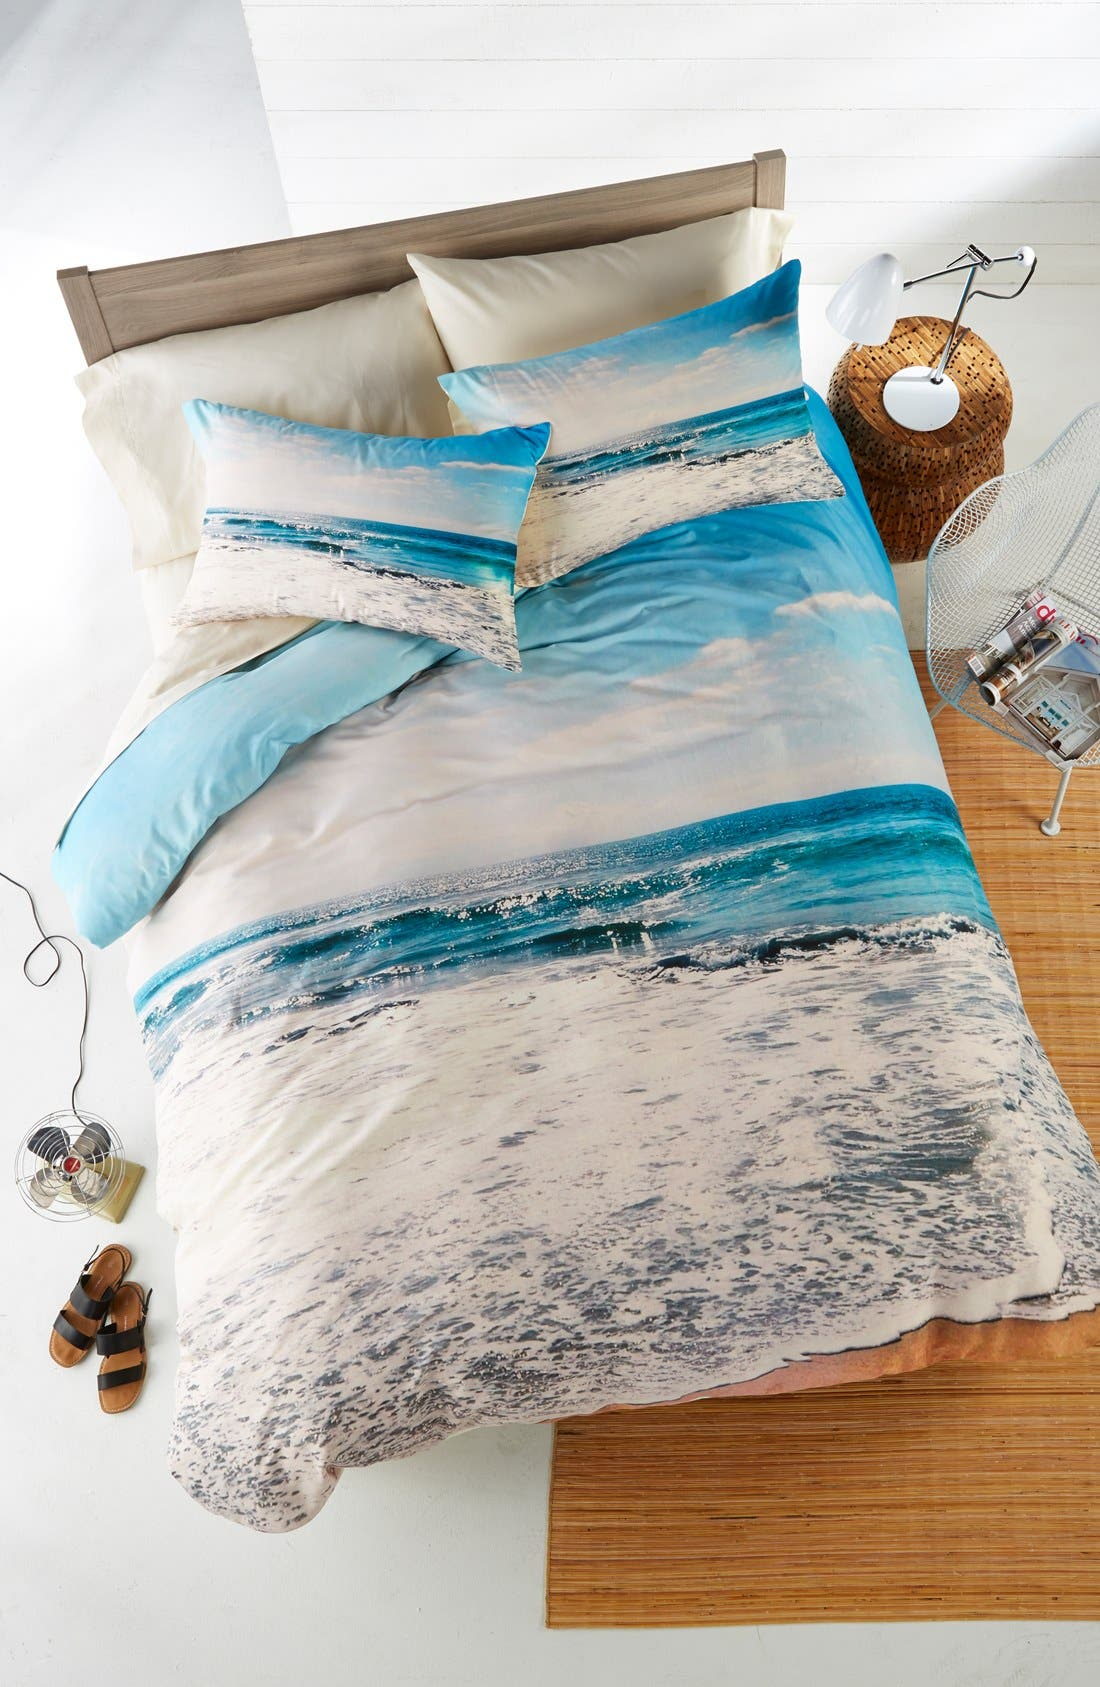 DENY DESIGNS Take Me There Duvet Cover &